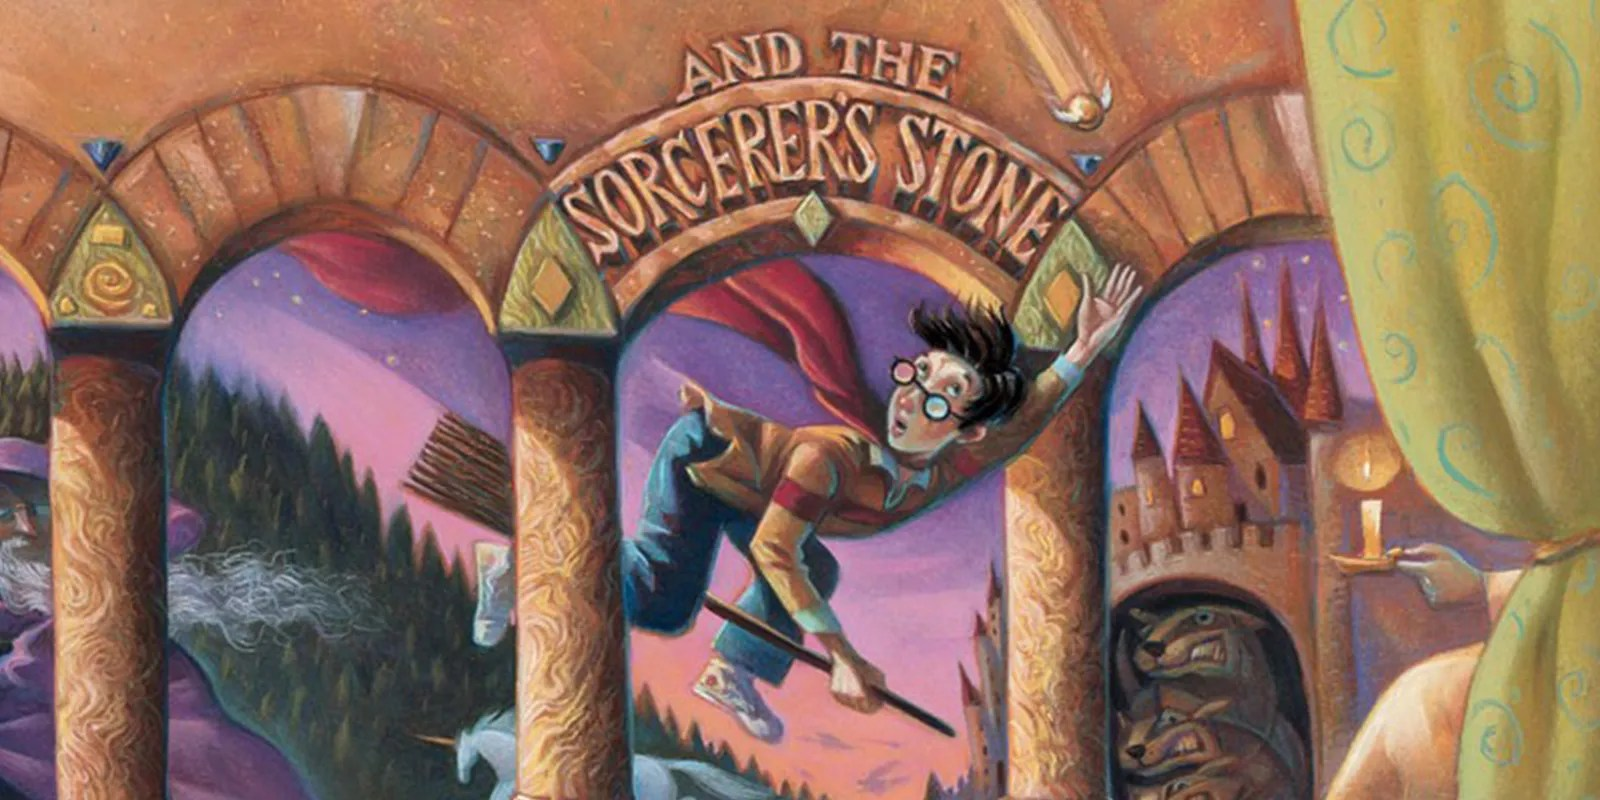 Stone Harry Sorcerers